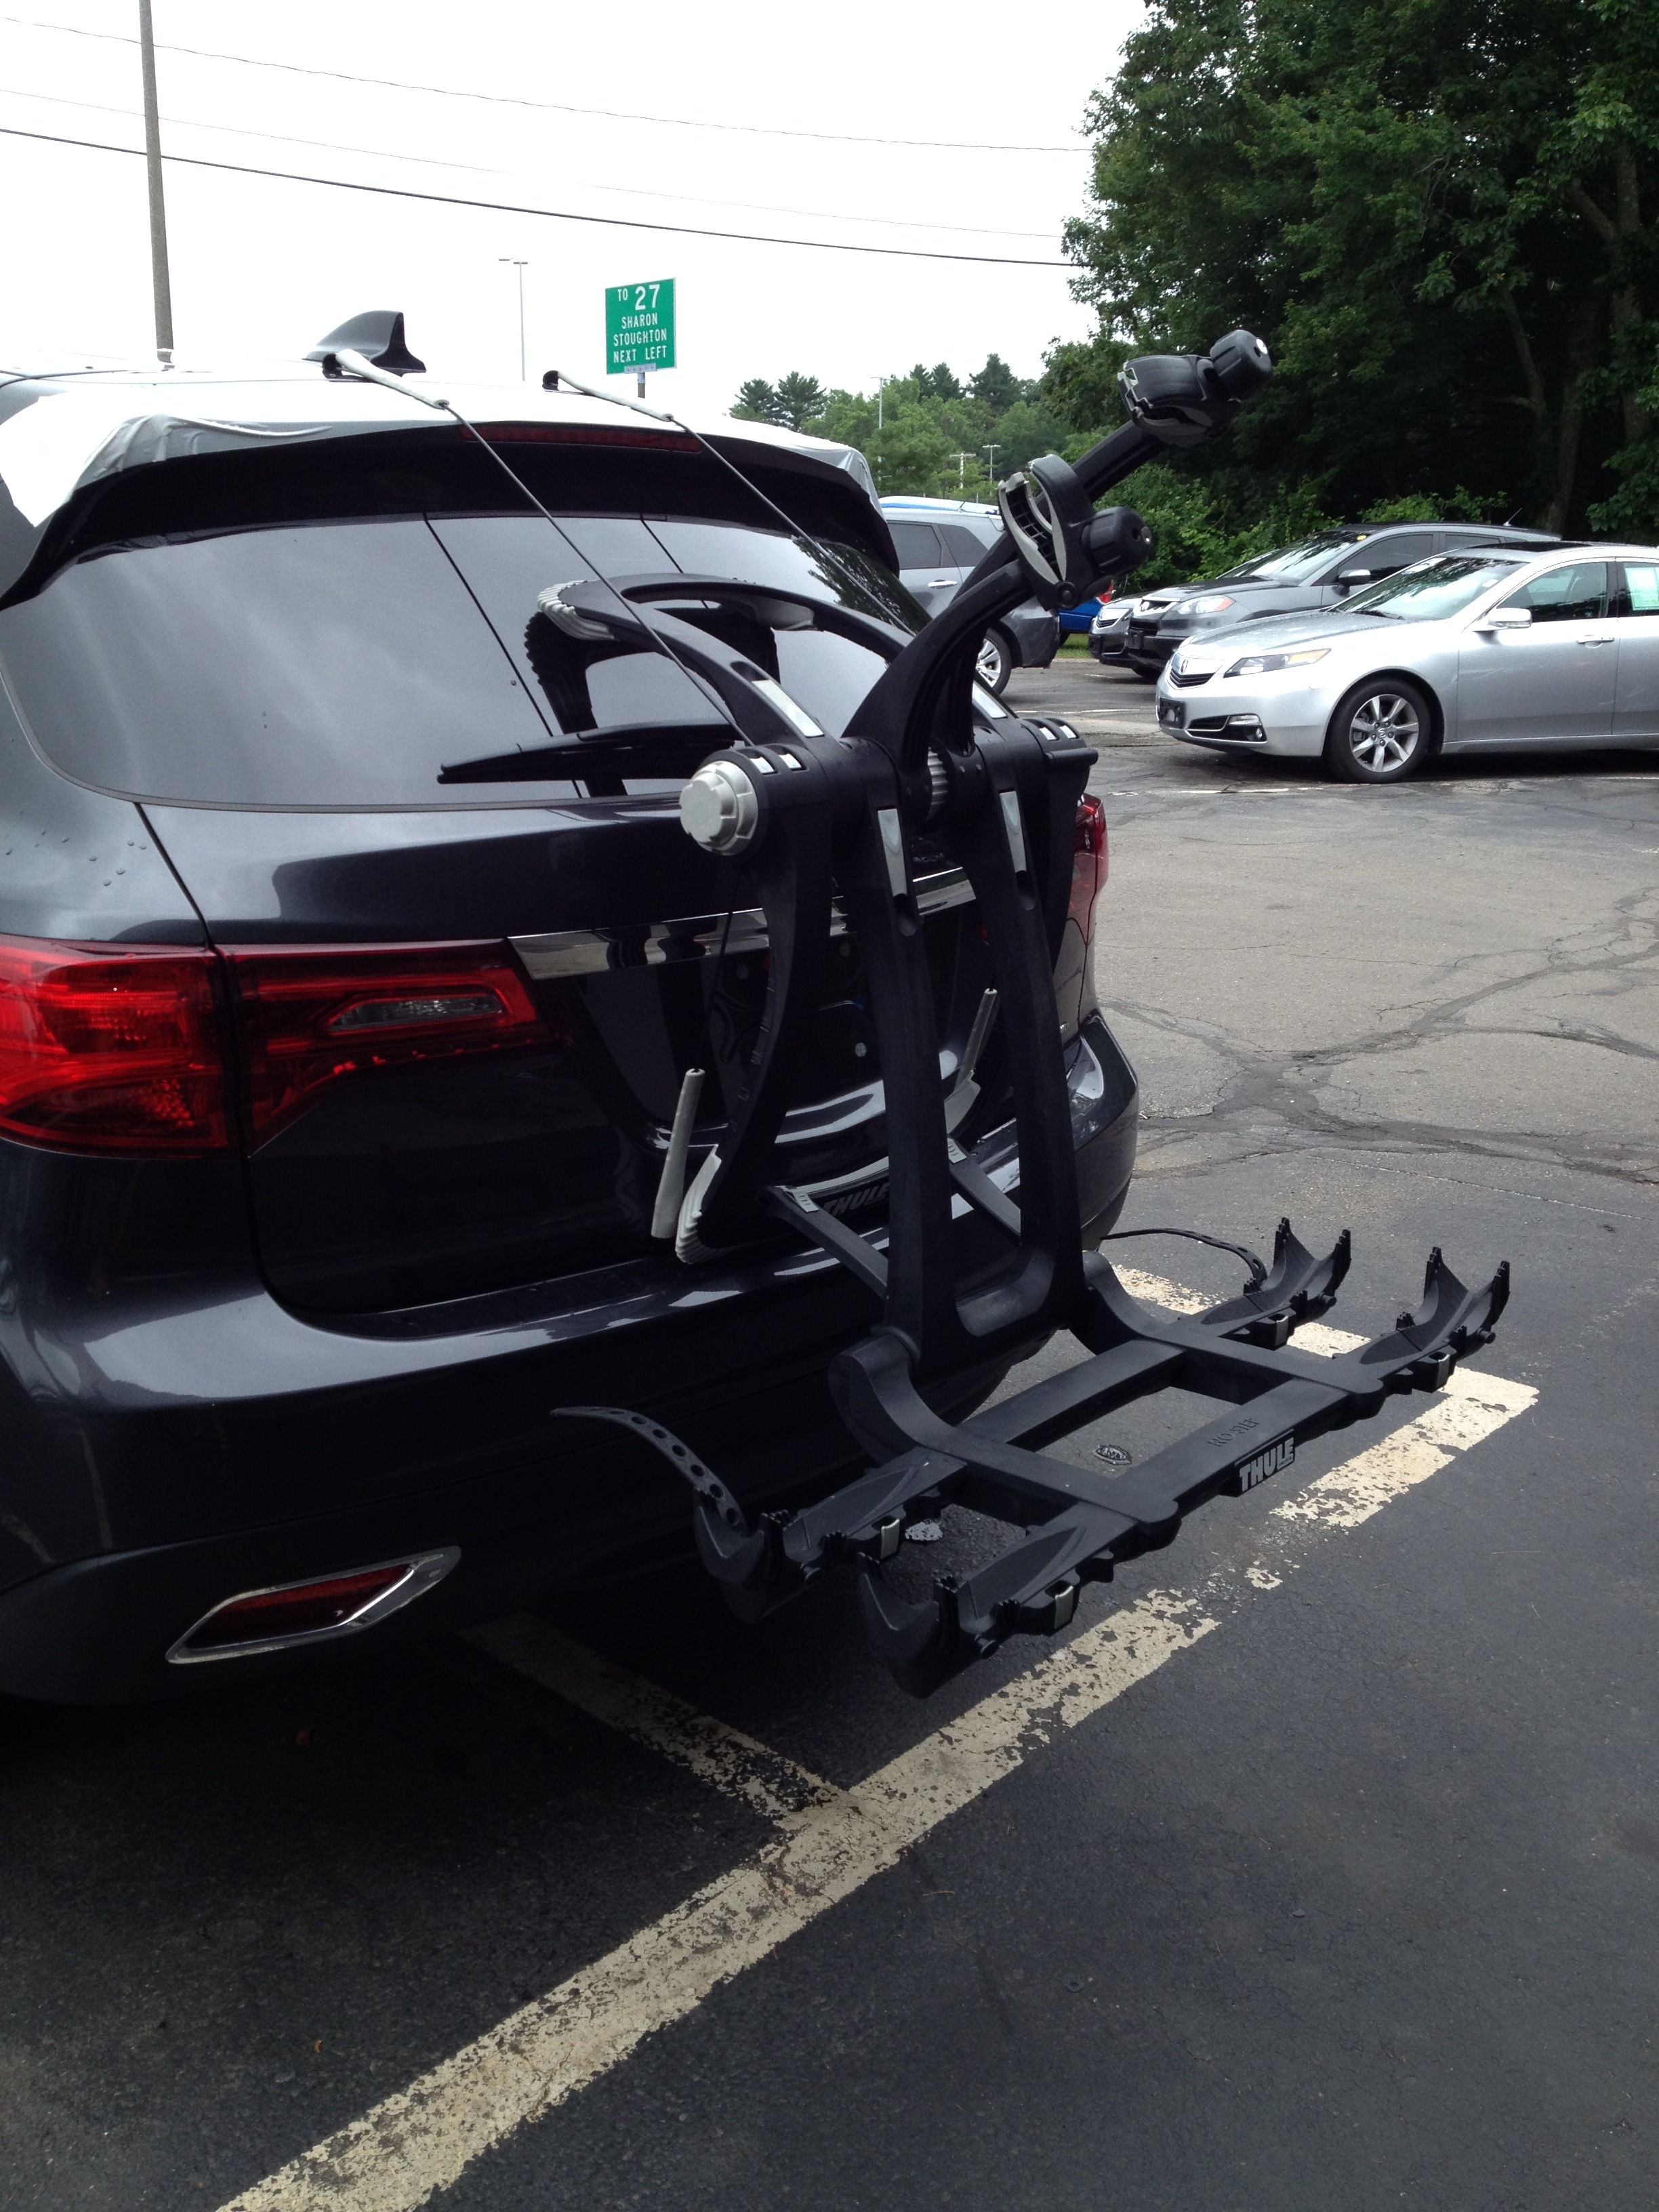 Bike Rack For MDX Acura MDX Forum Acura MDX SUV Forums - Acura mdx bike rack